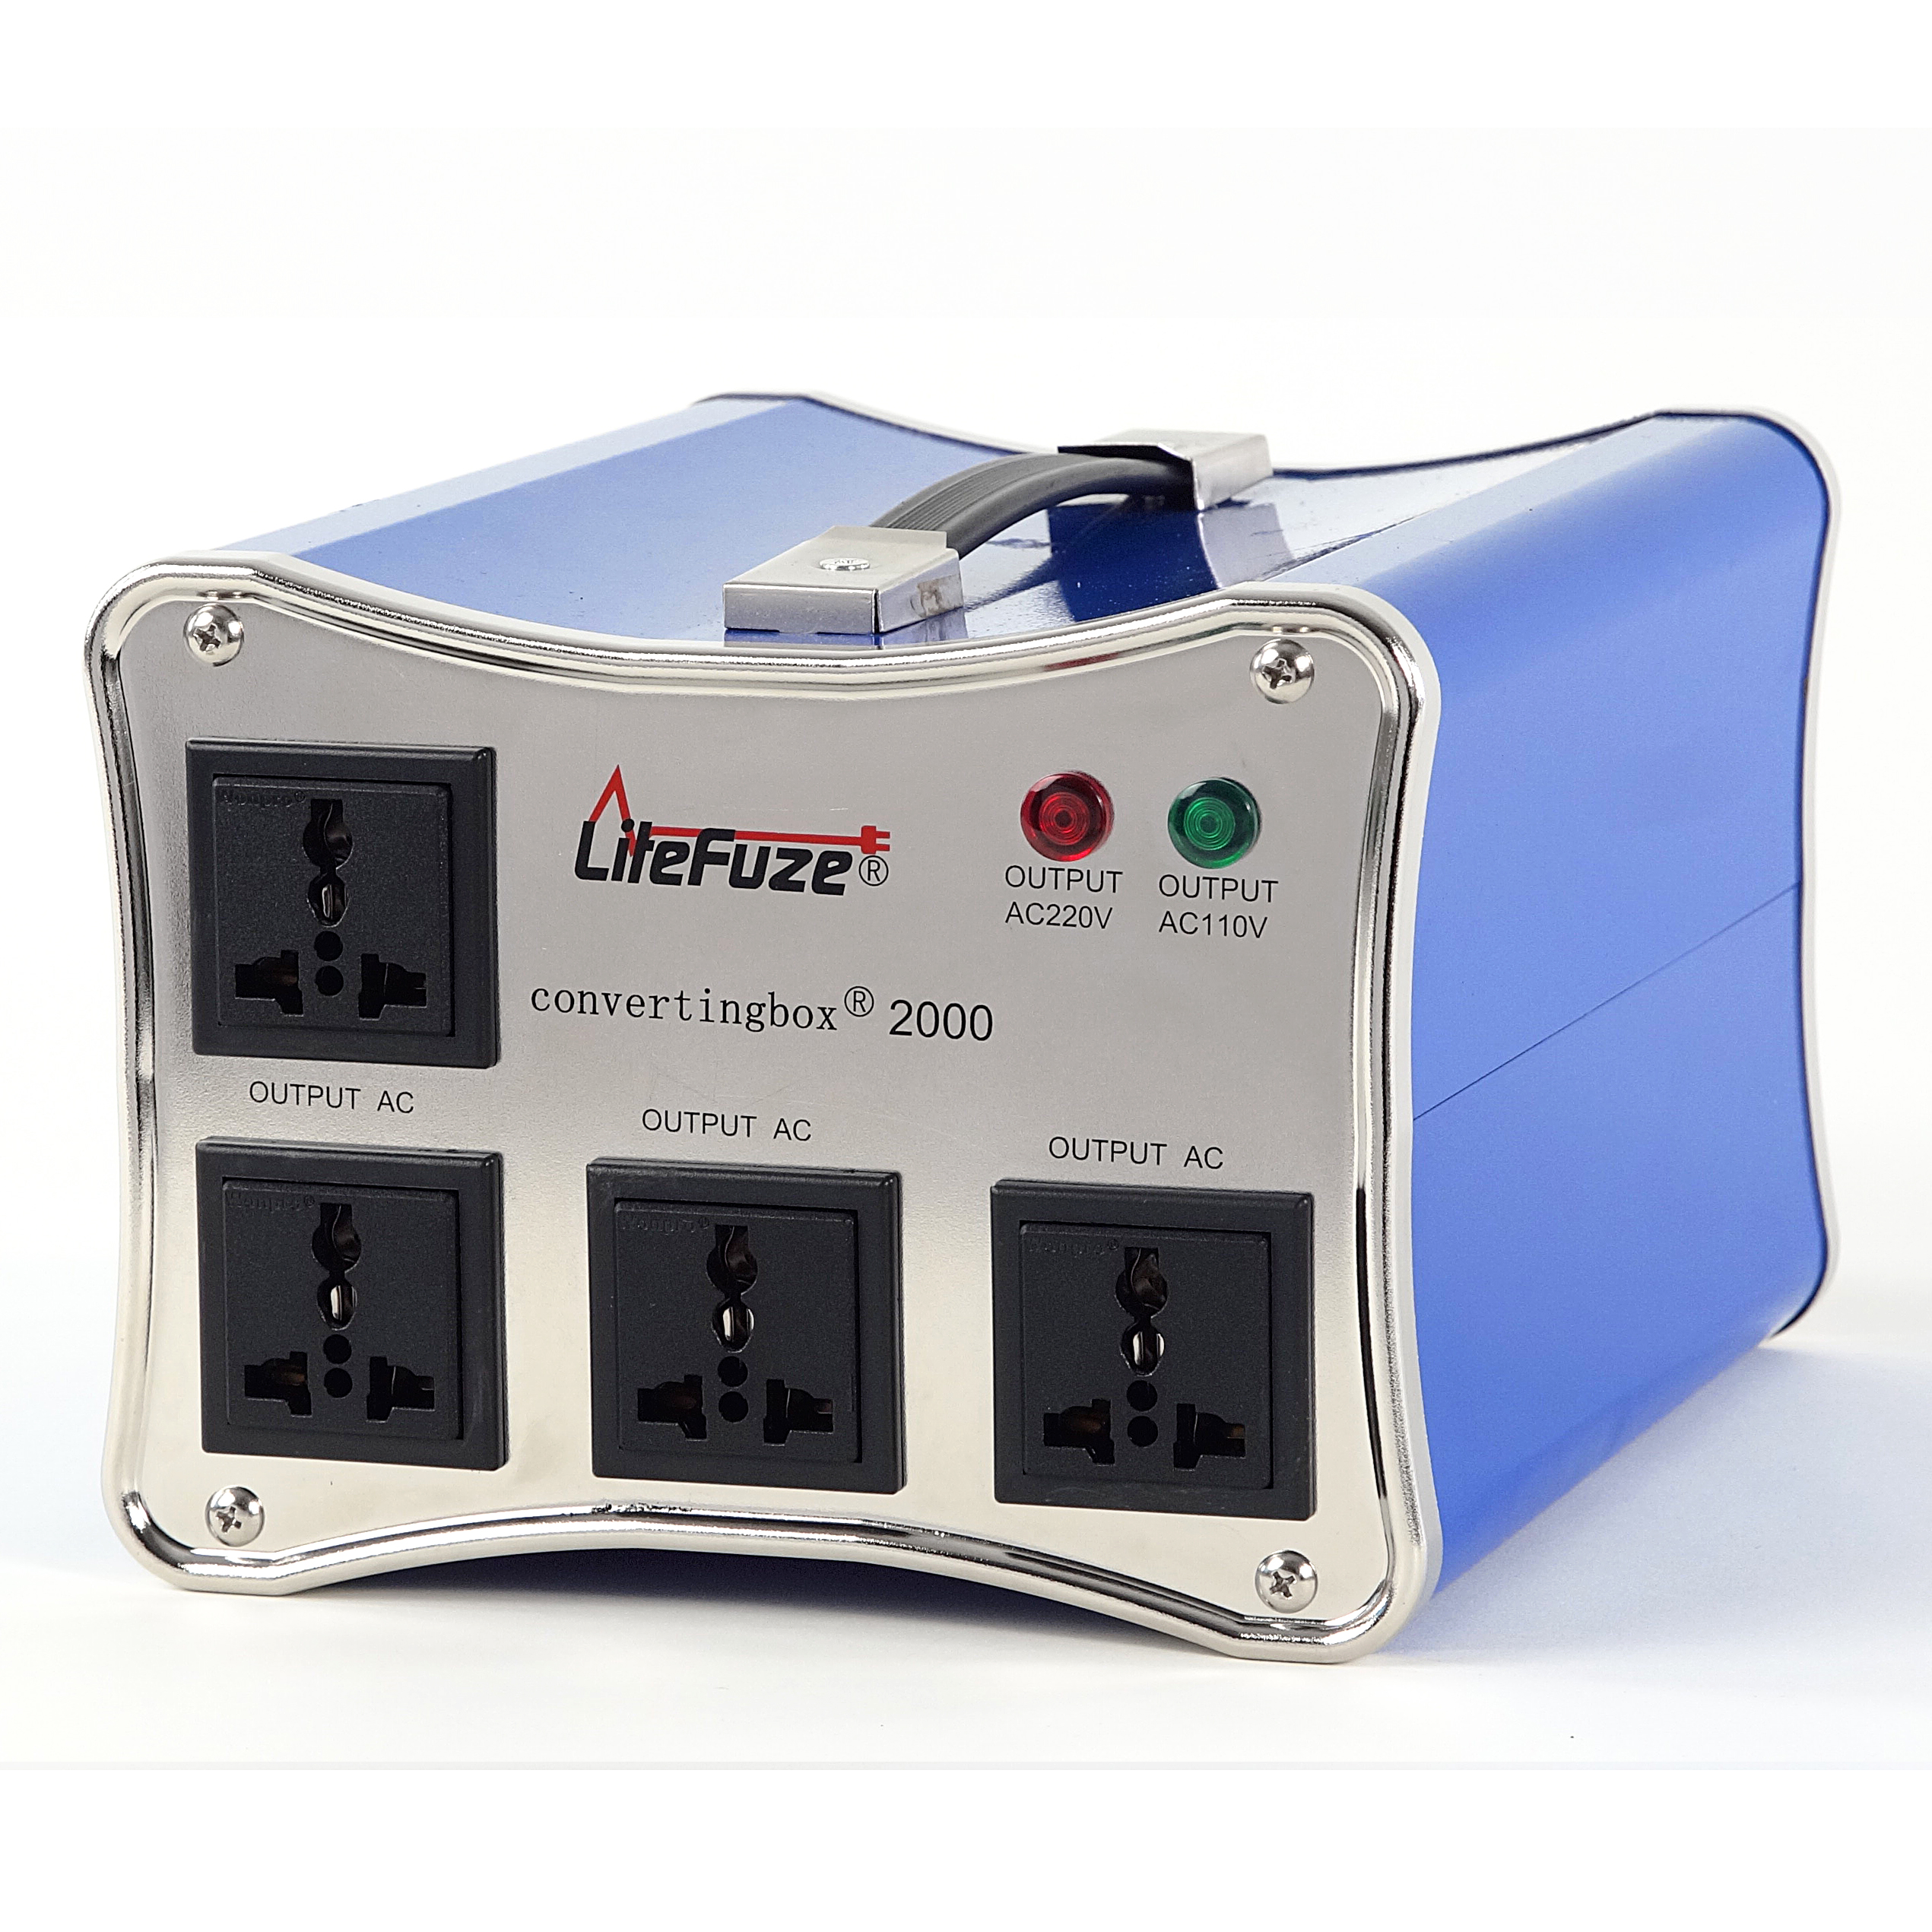 LiteFuze convertingbox 2000 Watt Auto Voltage Converter Transformer - Light Weight - Step Up/Down - Circuit Breaker - Detachable Cord